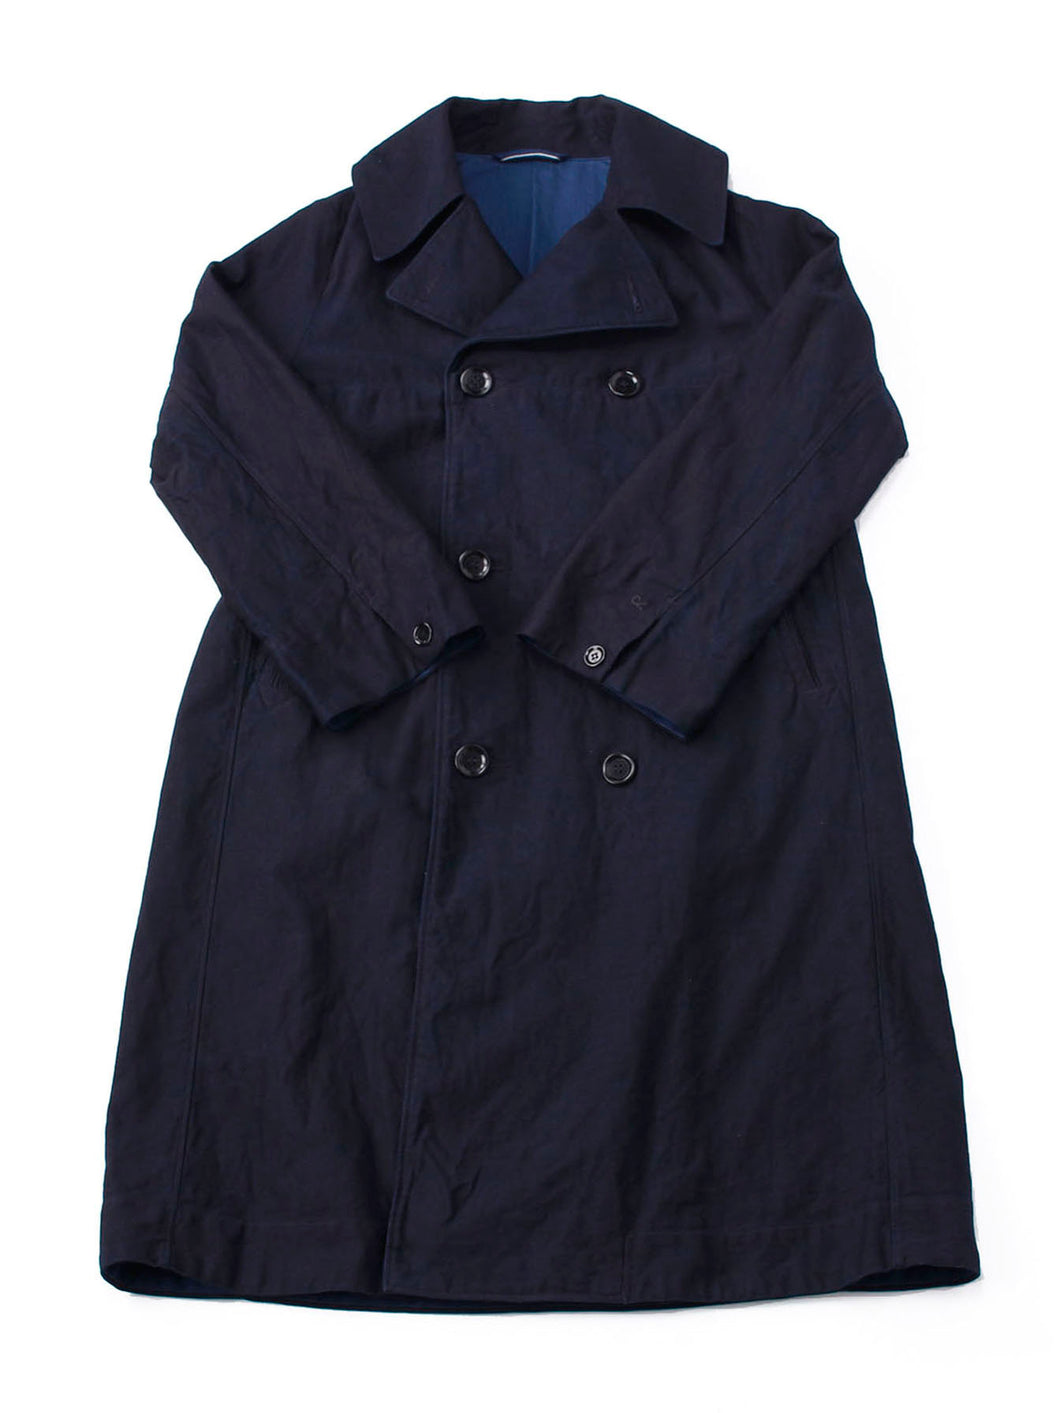 Ai Nando Mugi Satin Cotton Akiya Coat in ai indigo